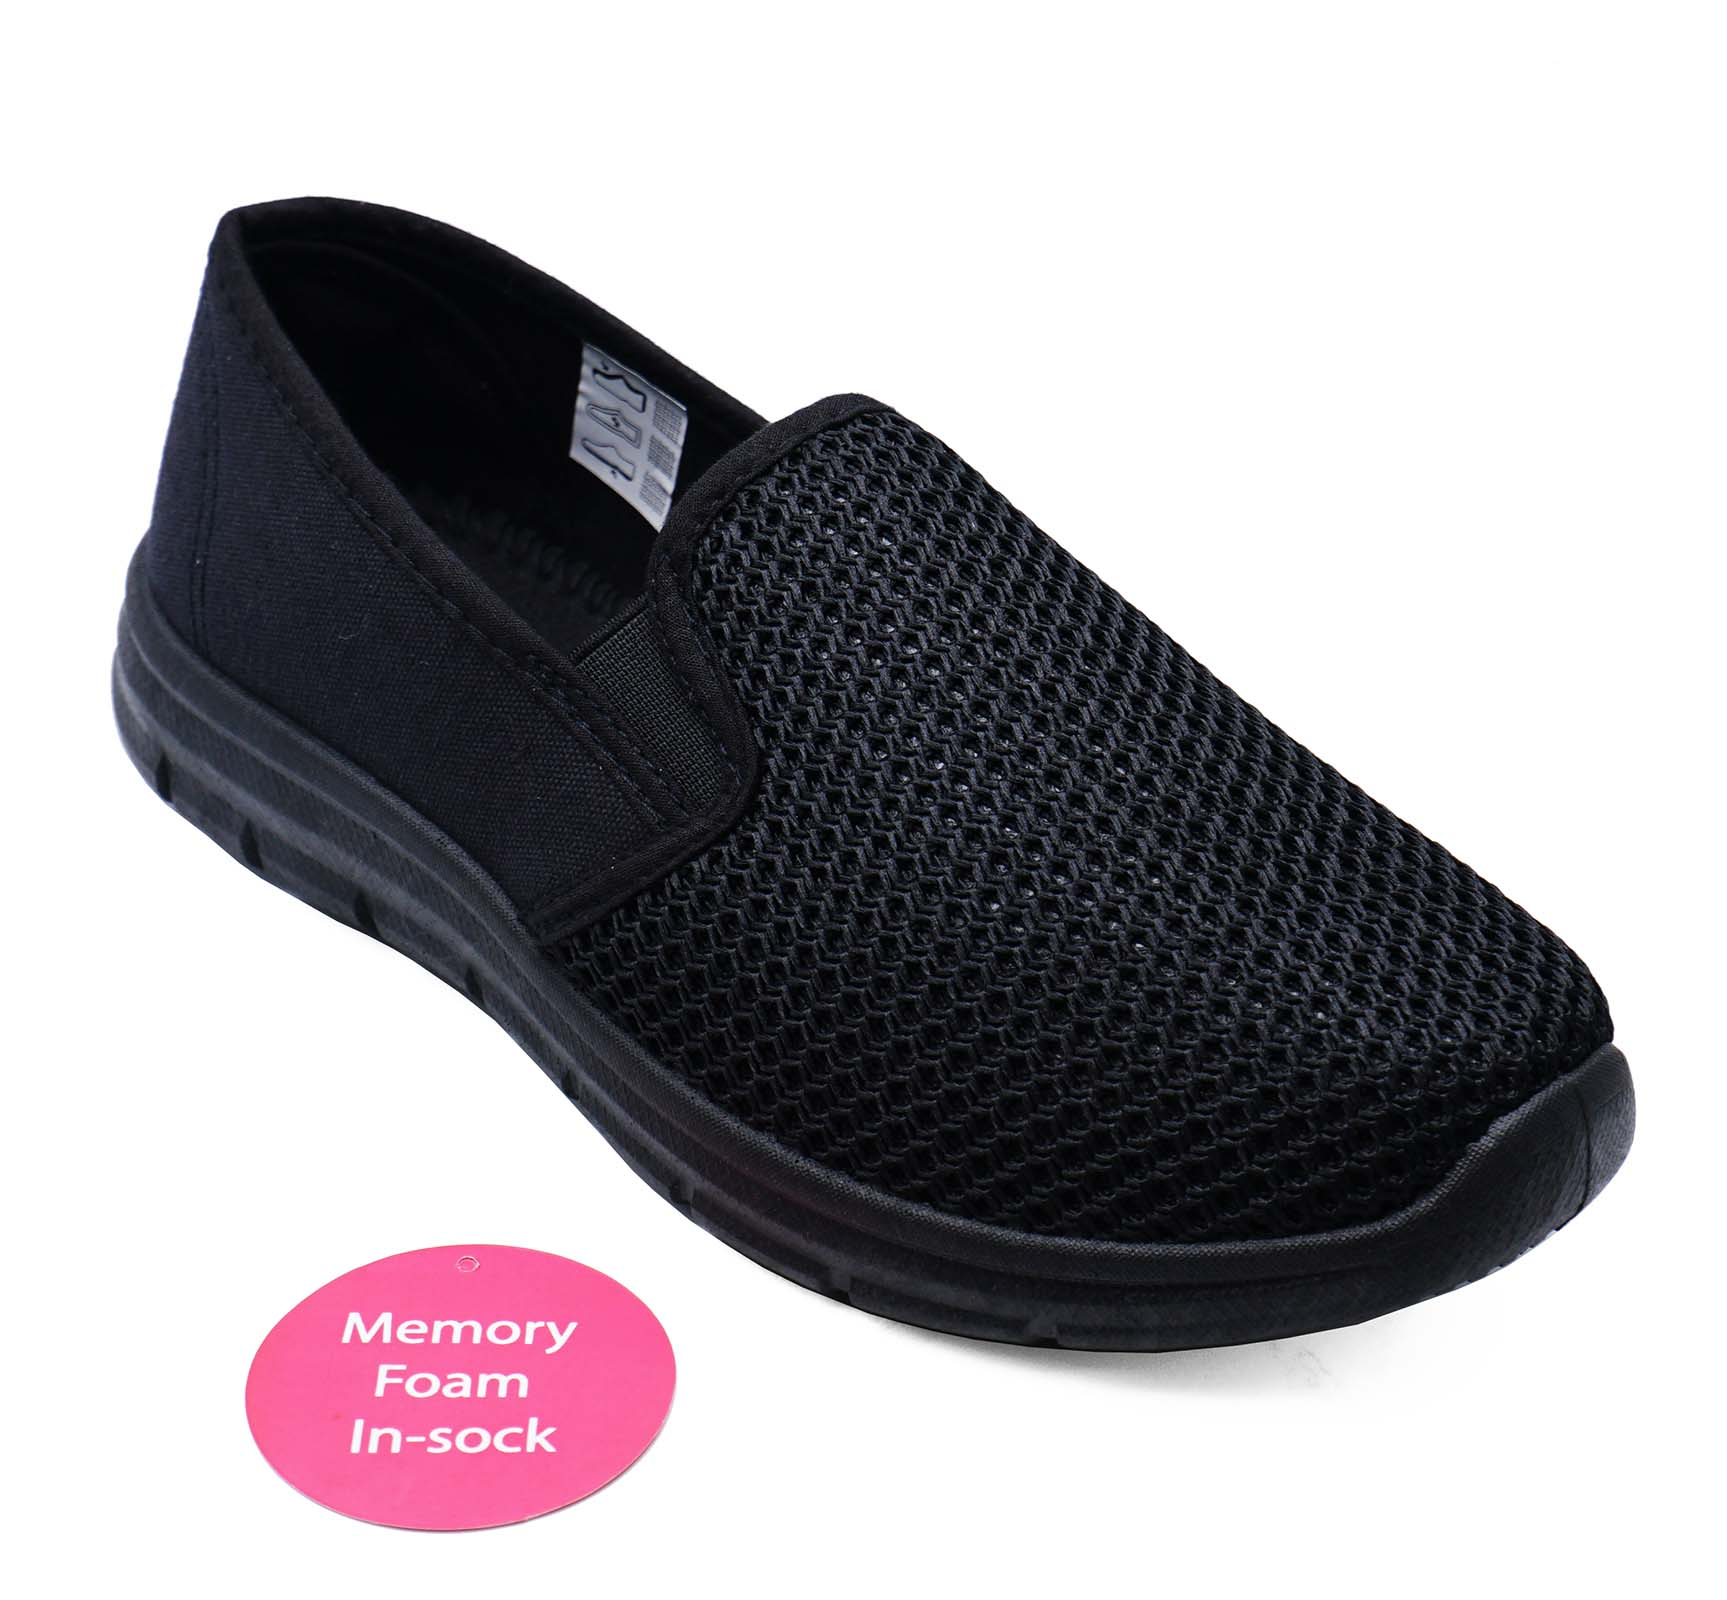 LADIES-BLACK-SLIP-ON-COMFY-MEMORY-FOAM-TRAINER-PLIMSOLLS-CASUAL-PUMPS-SHOES-3-9 thumbnail 6